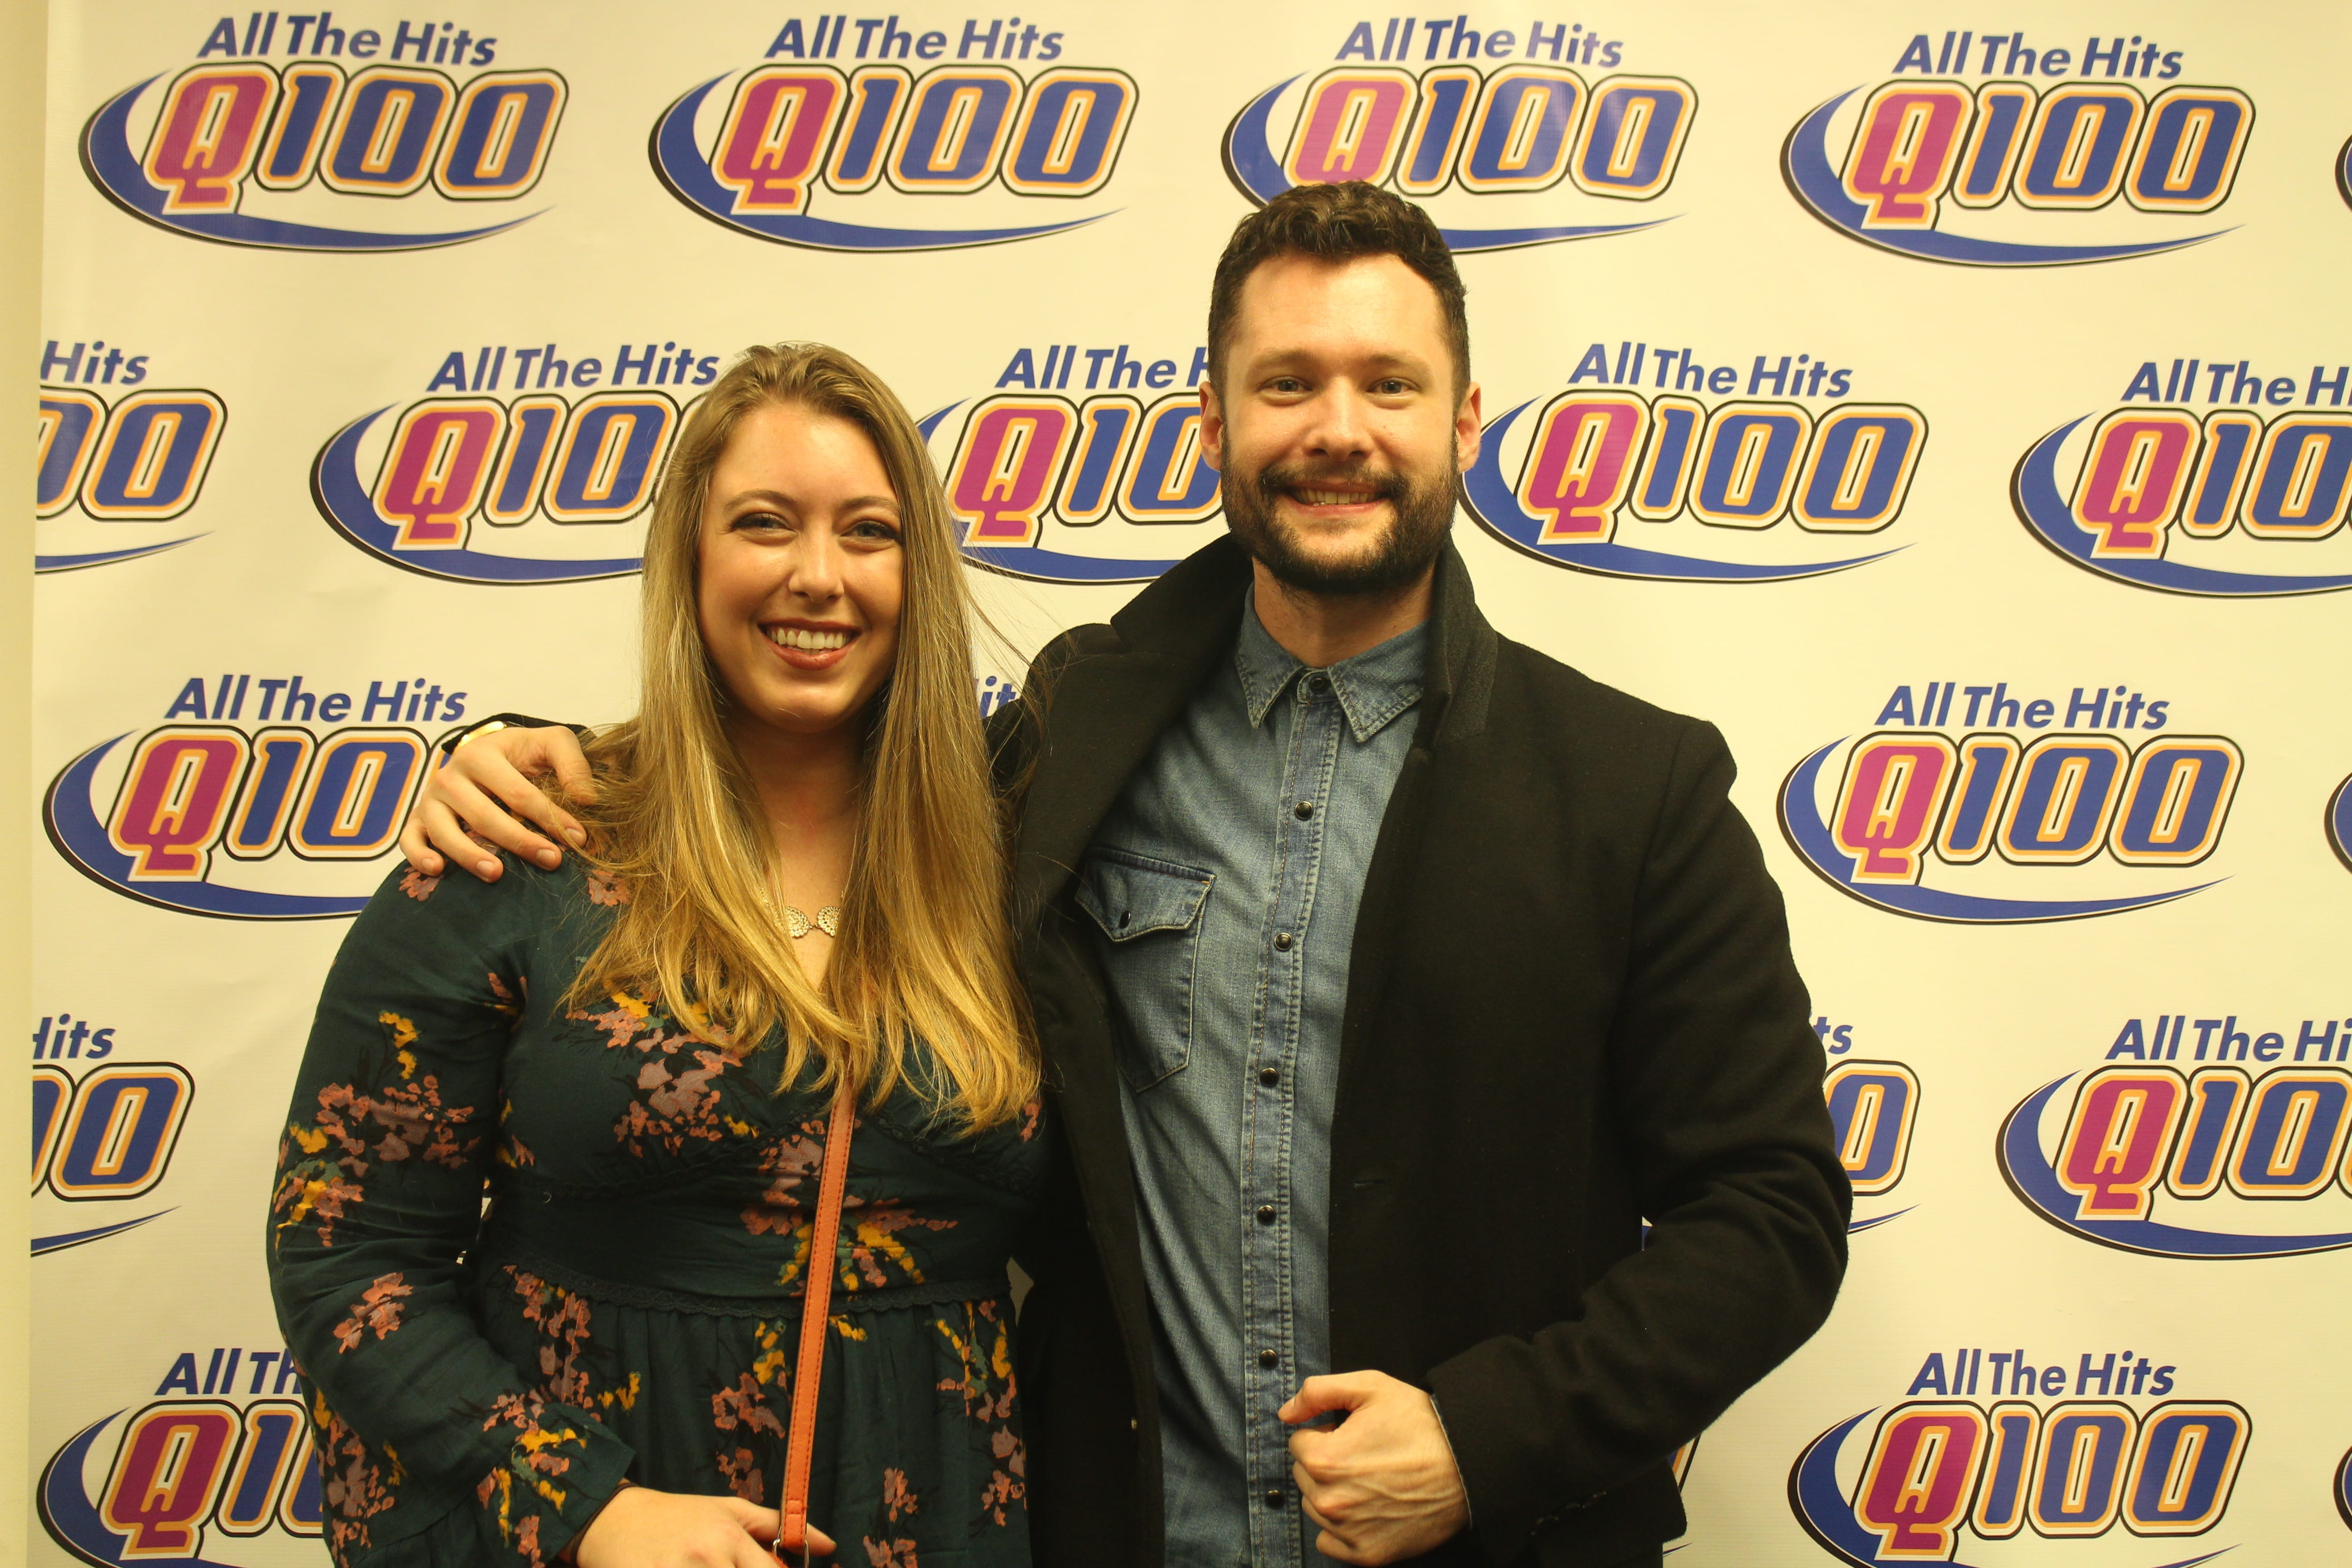 Calum Scott Meet Greet Pics Q100 Wwwq Fm